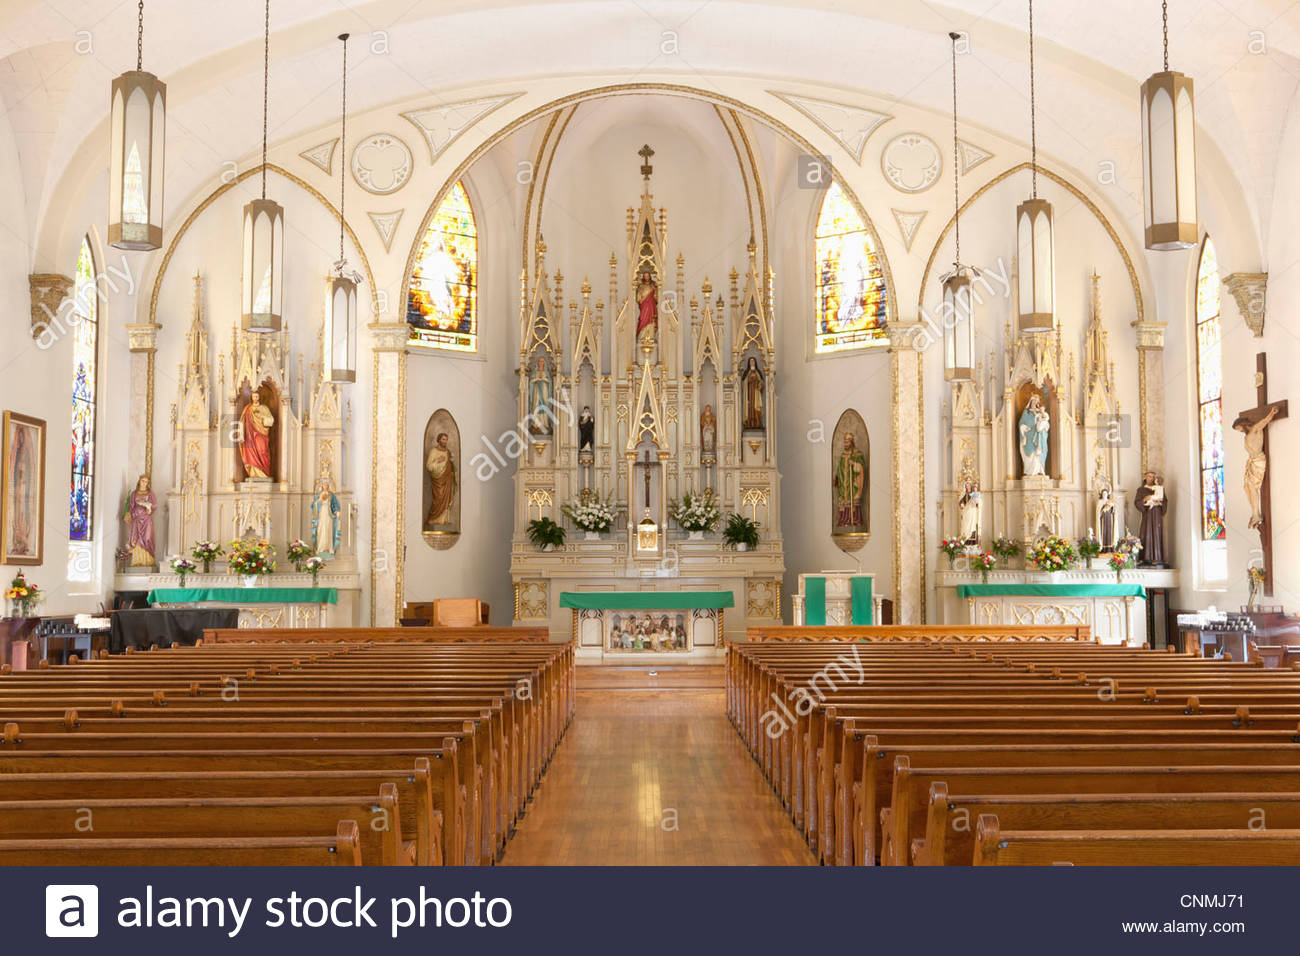 Pews and altar in empty ornate church - Stock Image